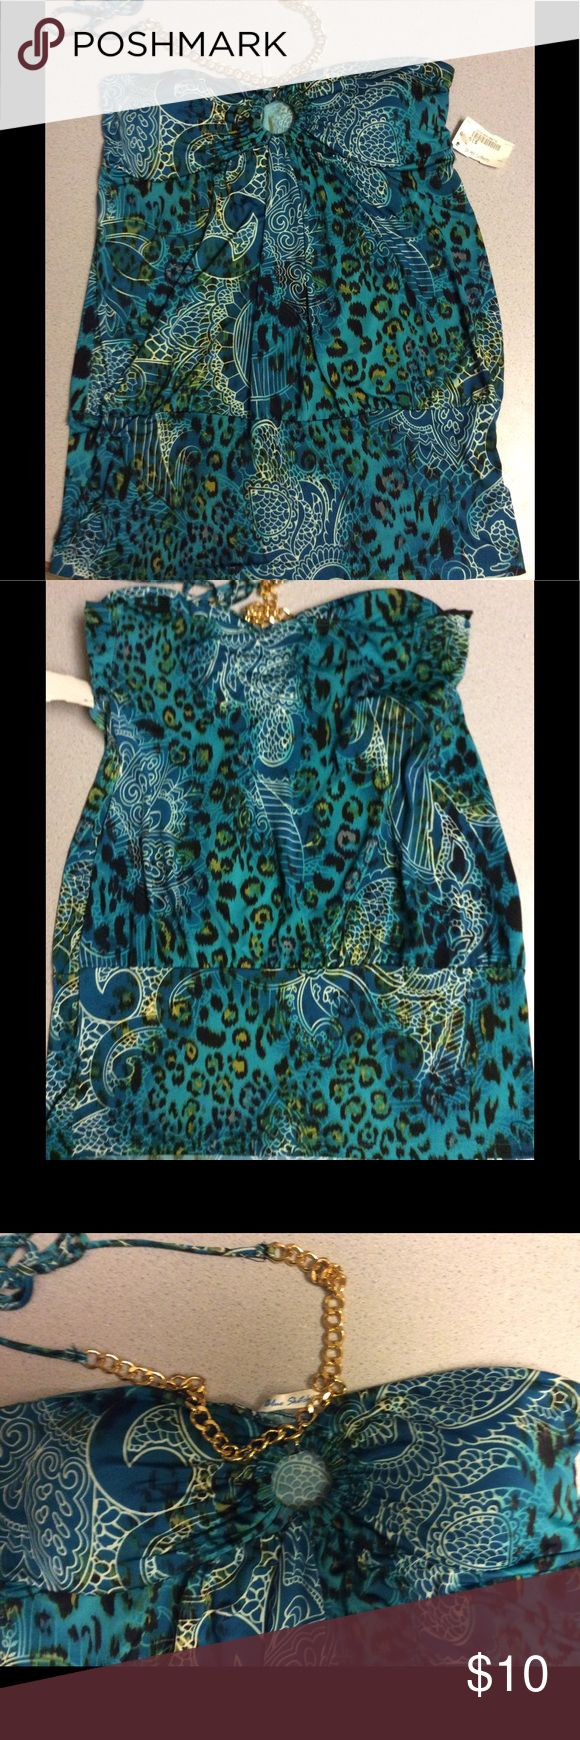 Blue Sketch Halter top, NWT, Sz L This fun halter top, by Blue Sketch, has gold toned chain links that lay across your collarbones before the (matching material) strings are used to tie the straps behind your neck. The super soft and silky polyester material has a paisley/animal print pattern in shades of blue, teal, green, white, black, and brown. The cups are padded and molded to fit in a flattering manner and are separated with a peek-a-boo 'key hole' that the chain is attached to. Smock…